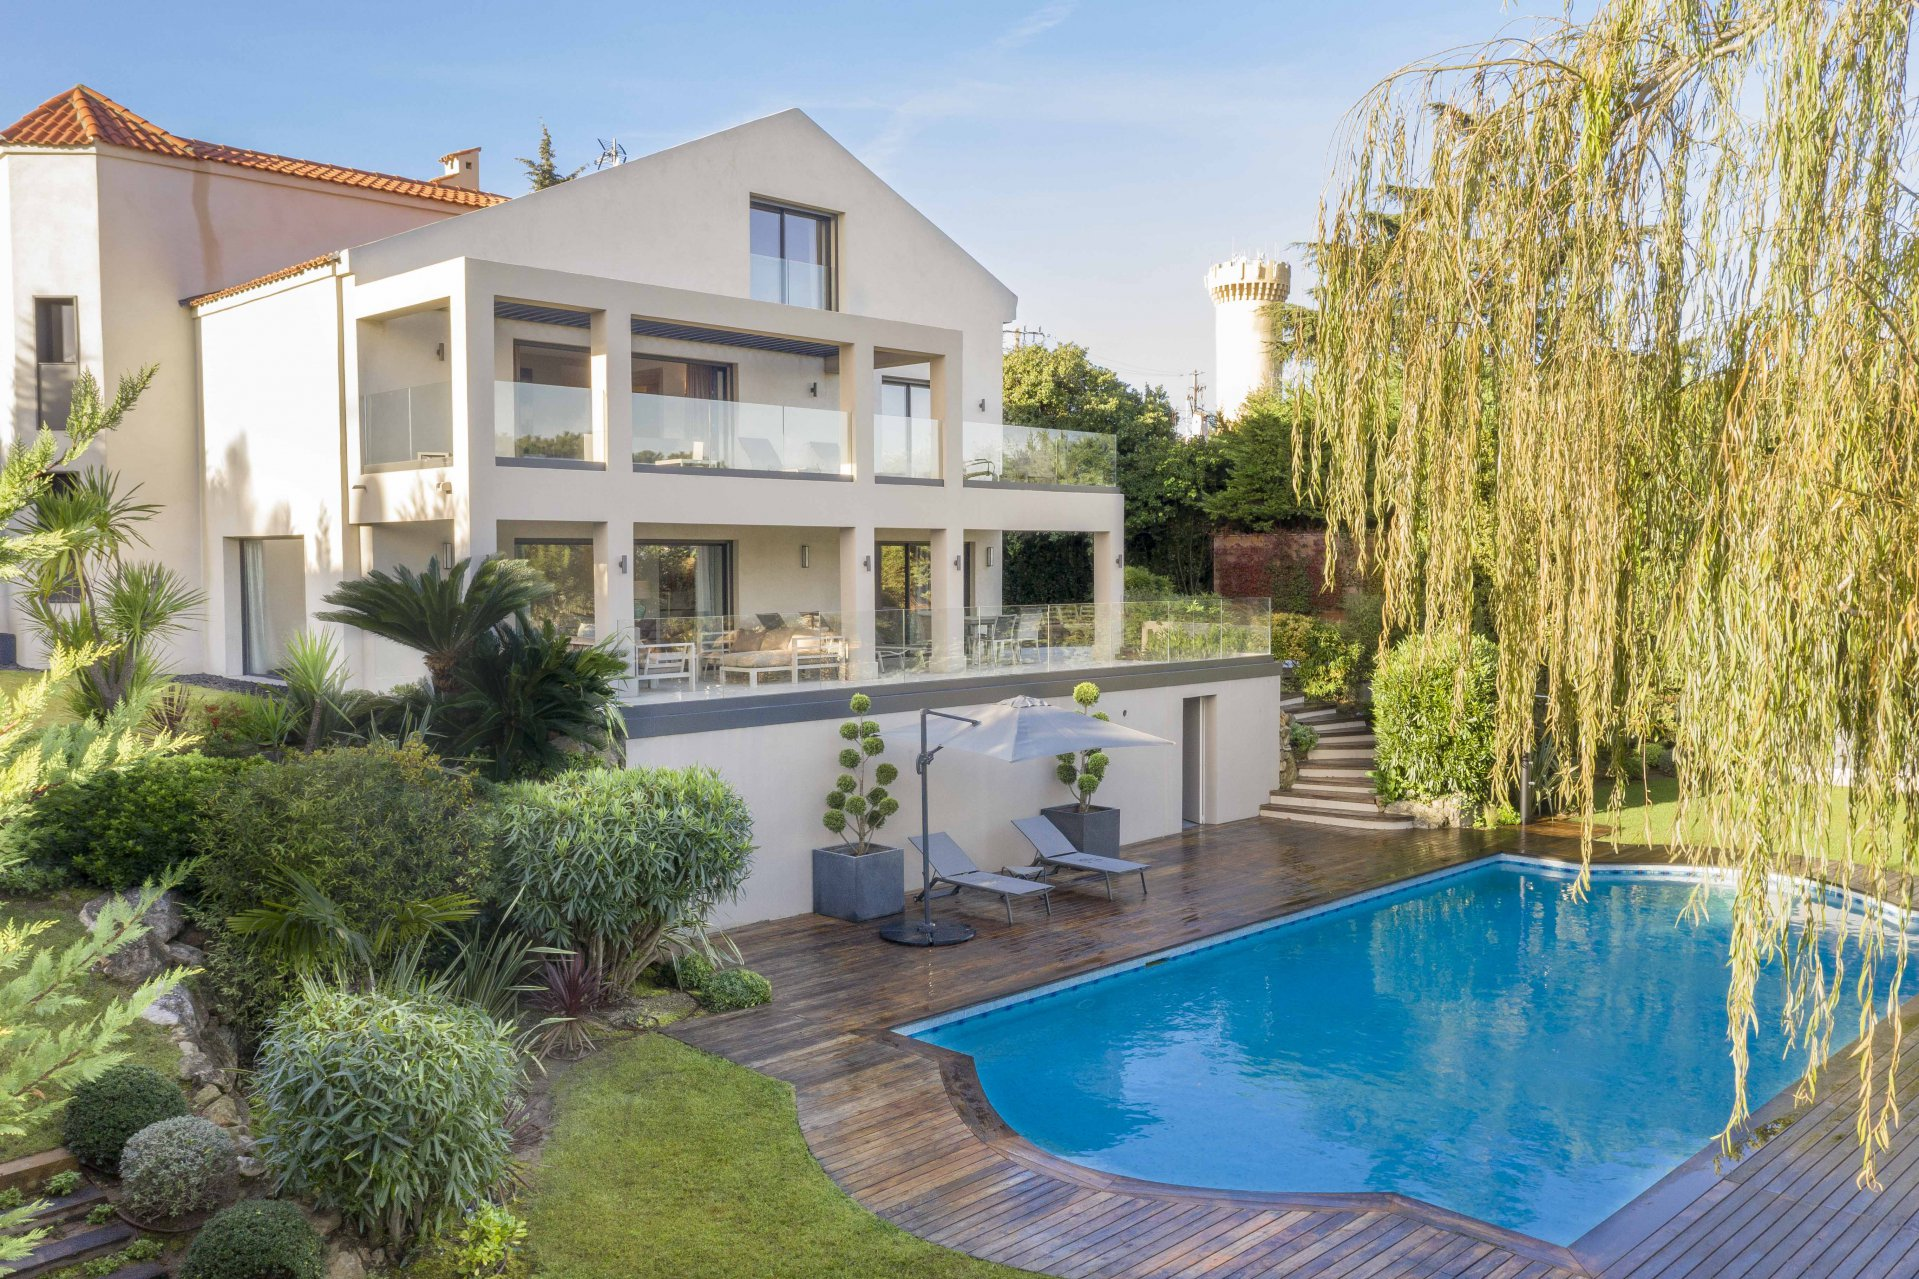 SUPER CANNES - RENOVATED VILLA - SEA VIEW